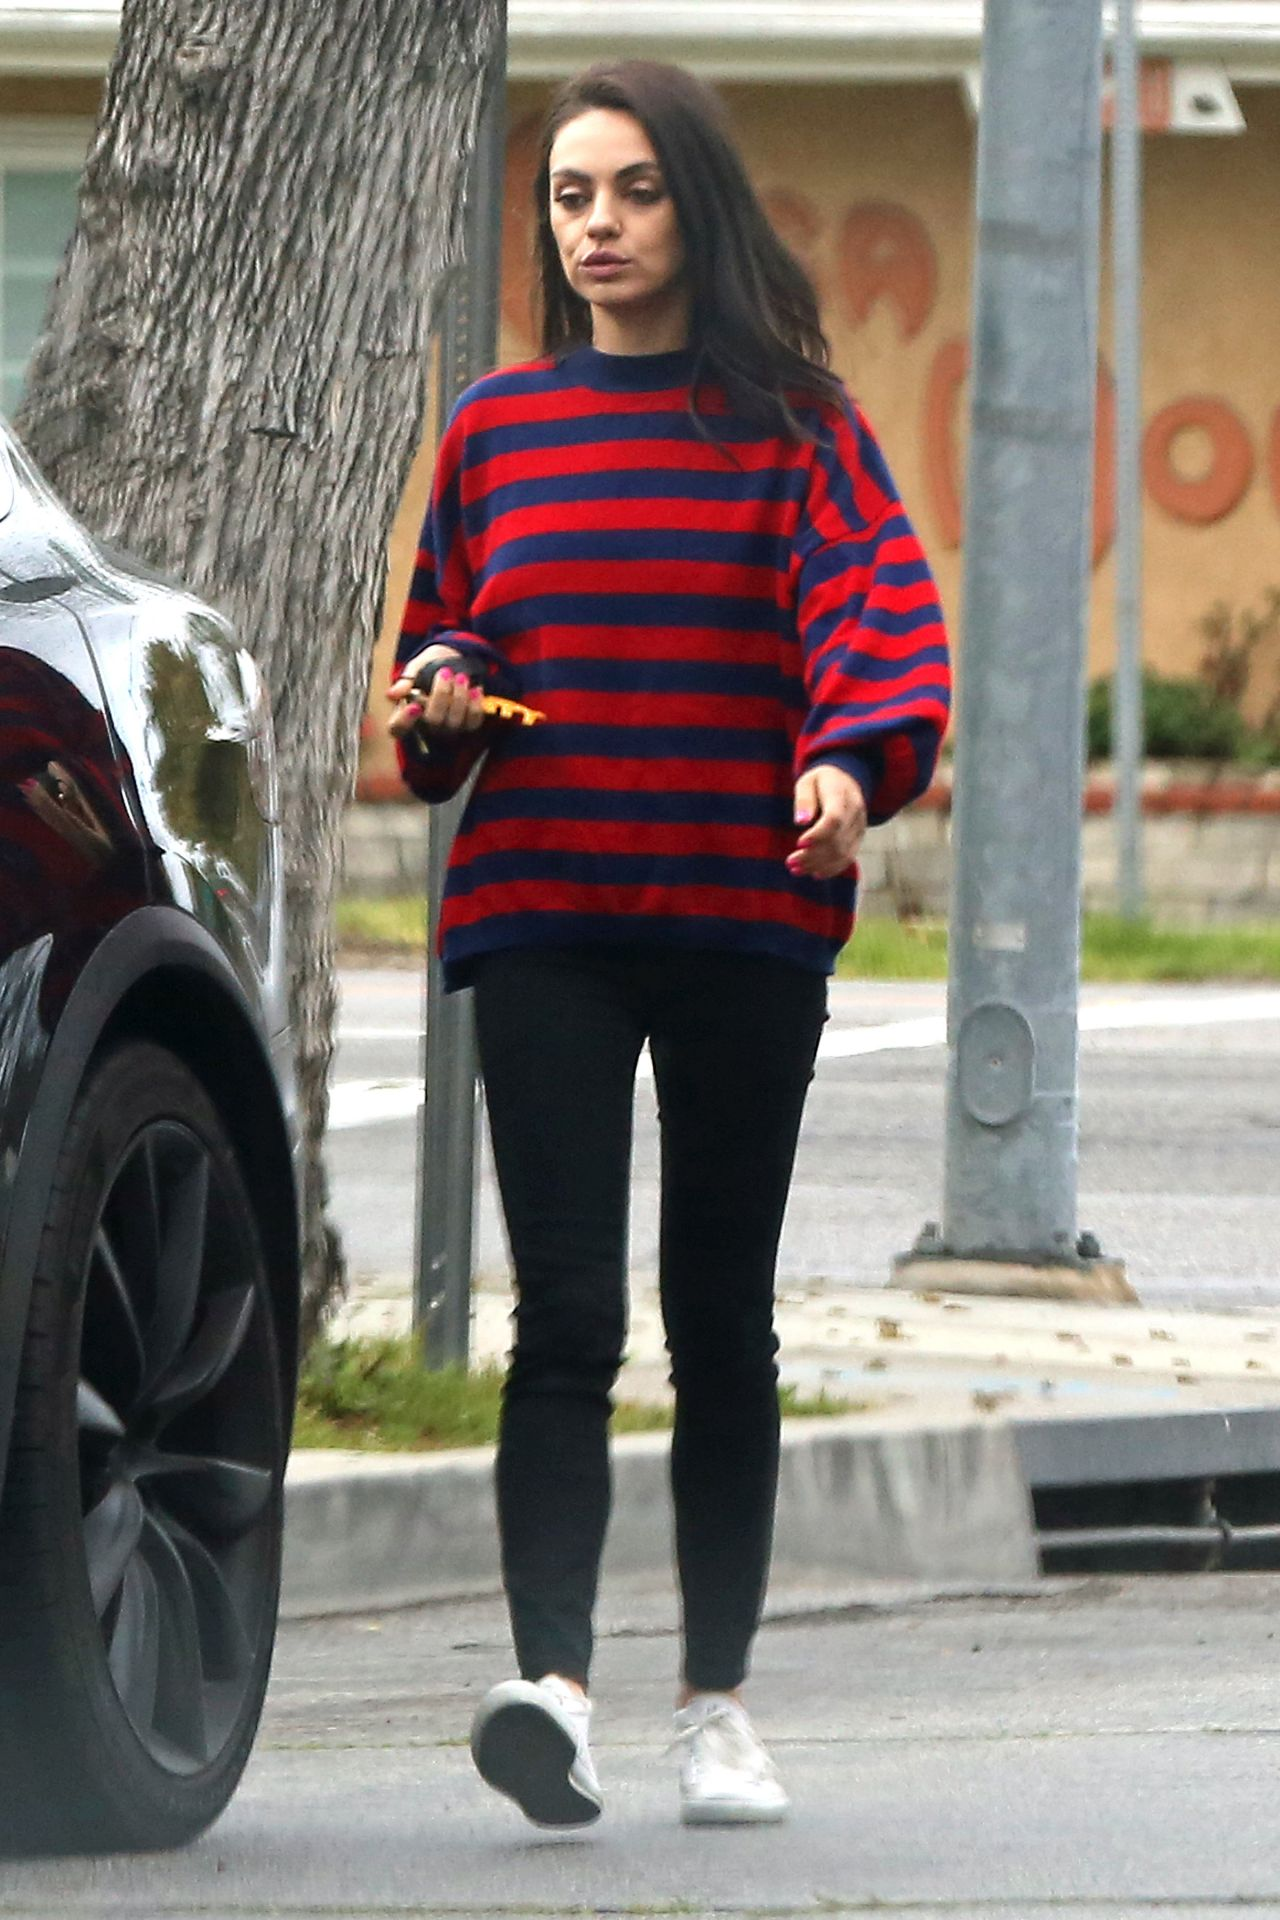 mila kunis street style out in los angeles 03212019